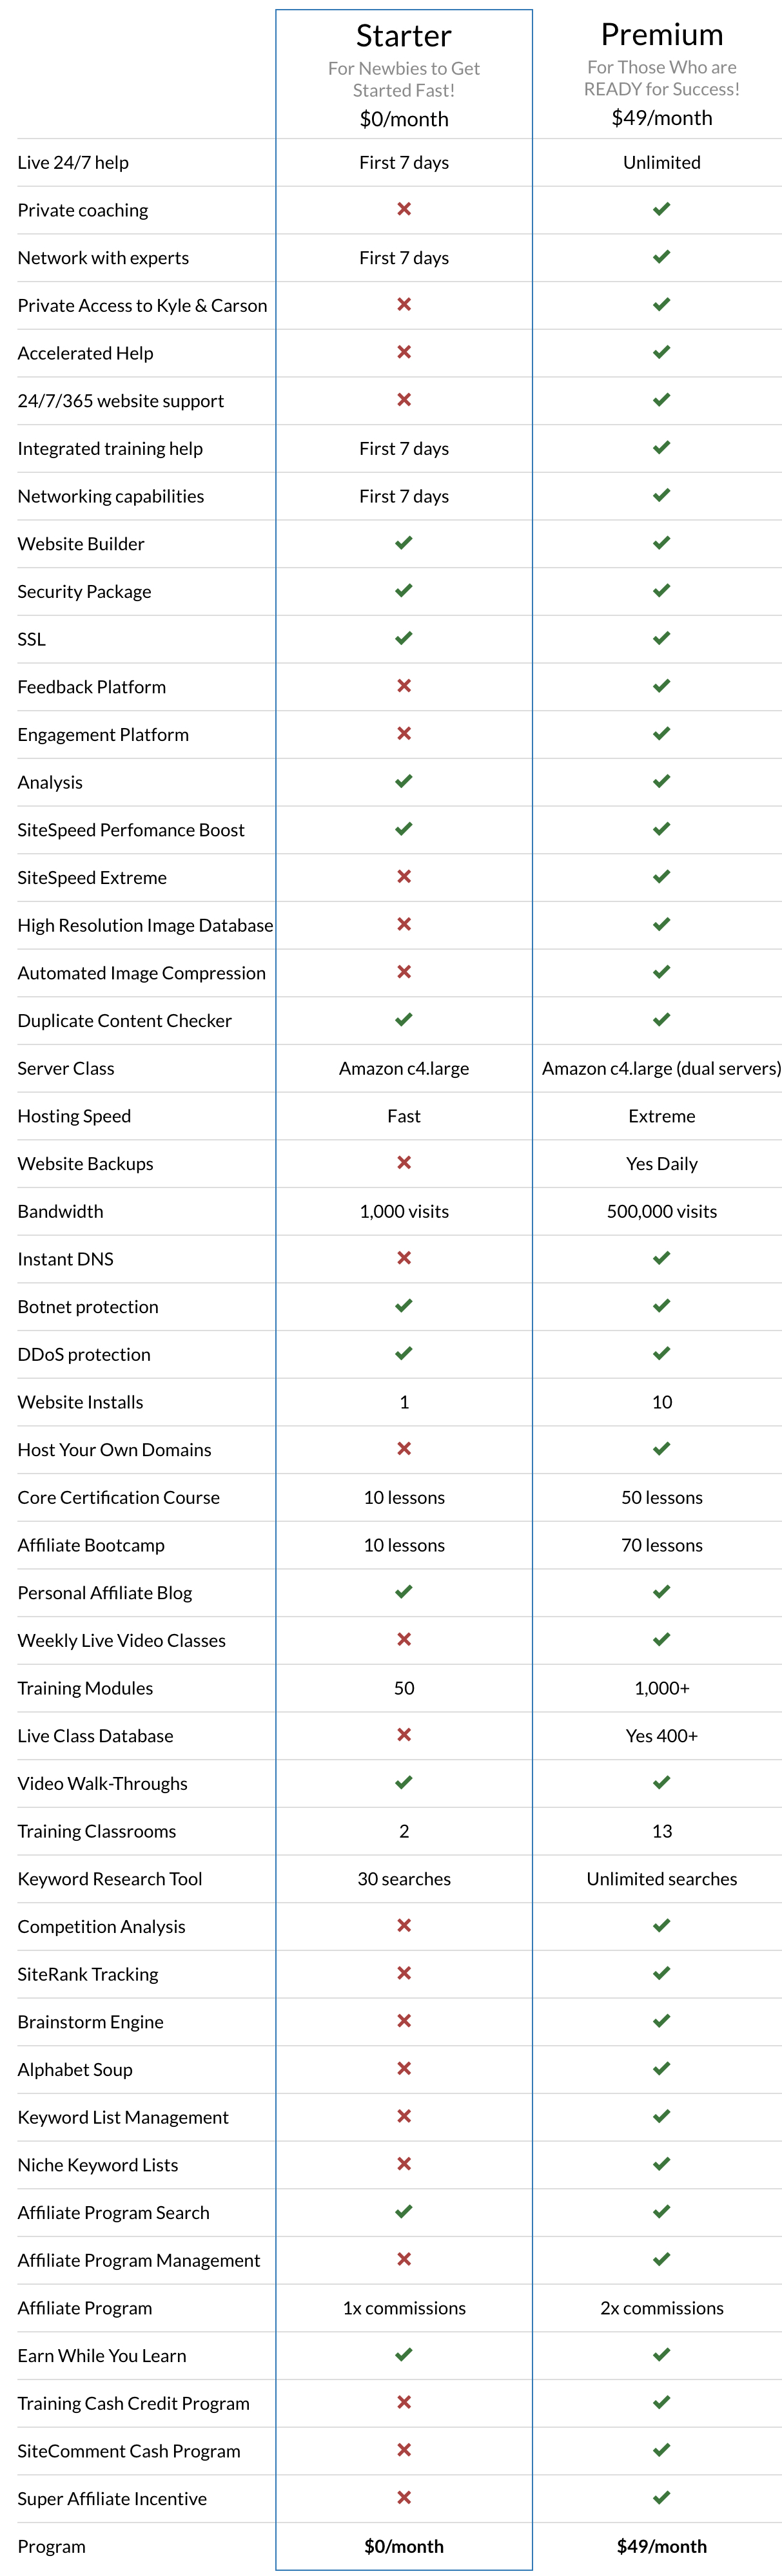 Comparison Chart of Starter vs Premium Membership with Wealthy Affiliate